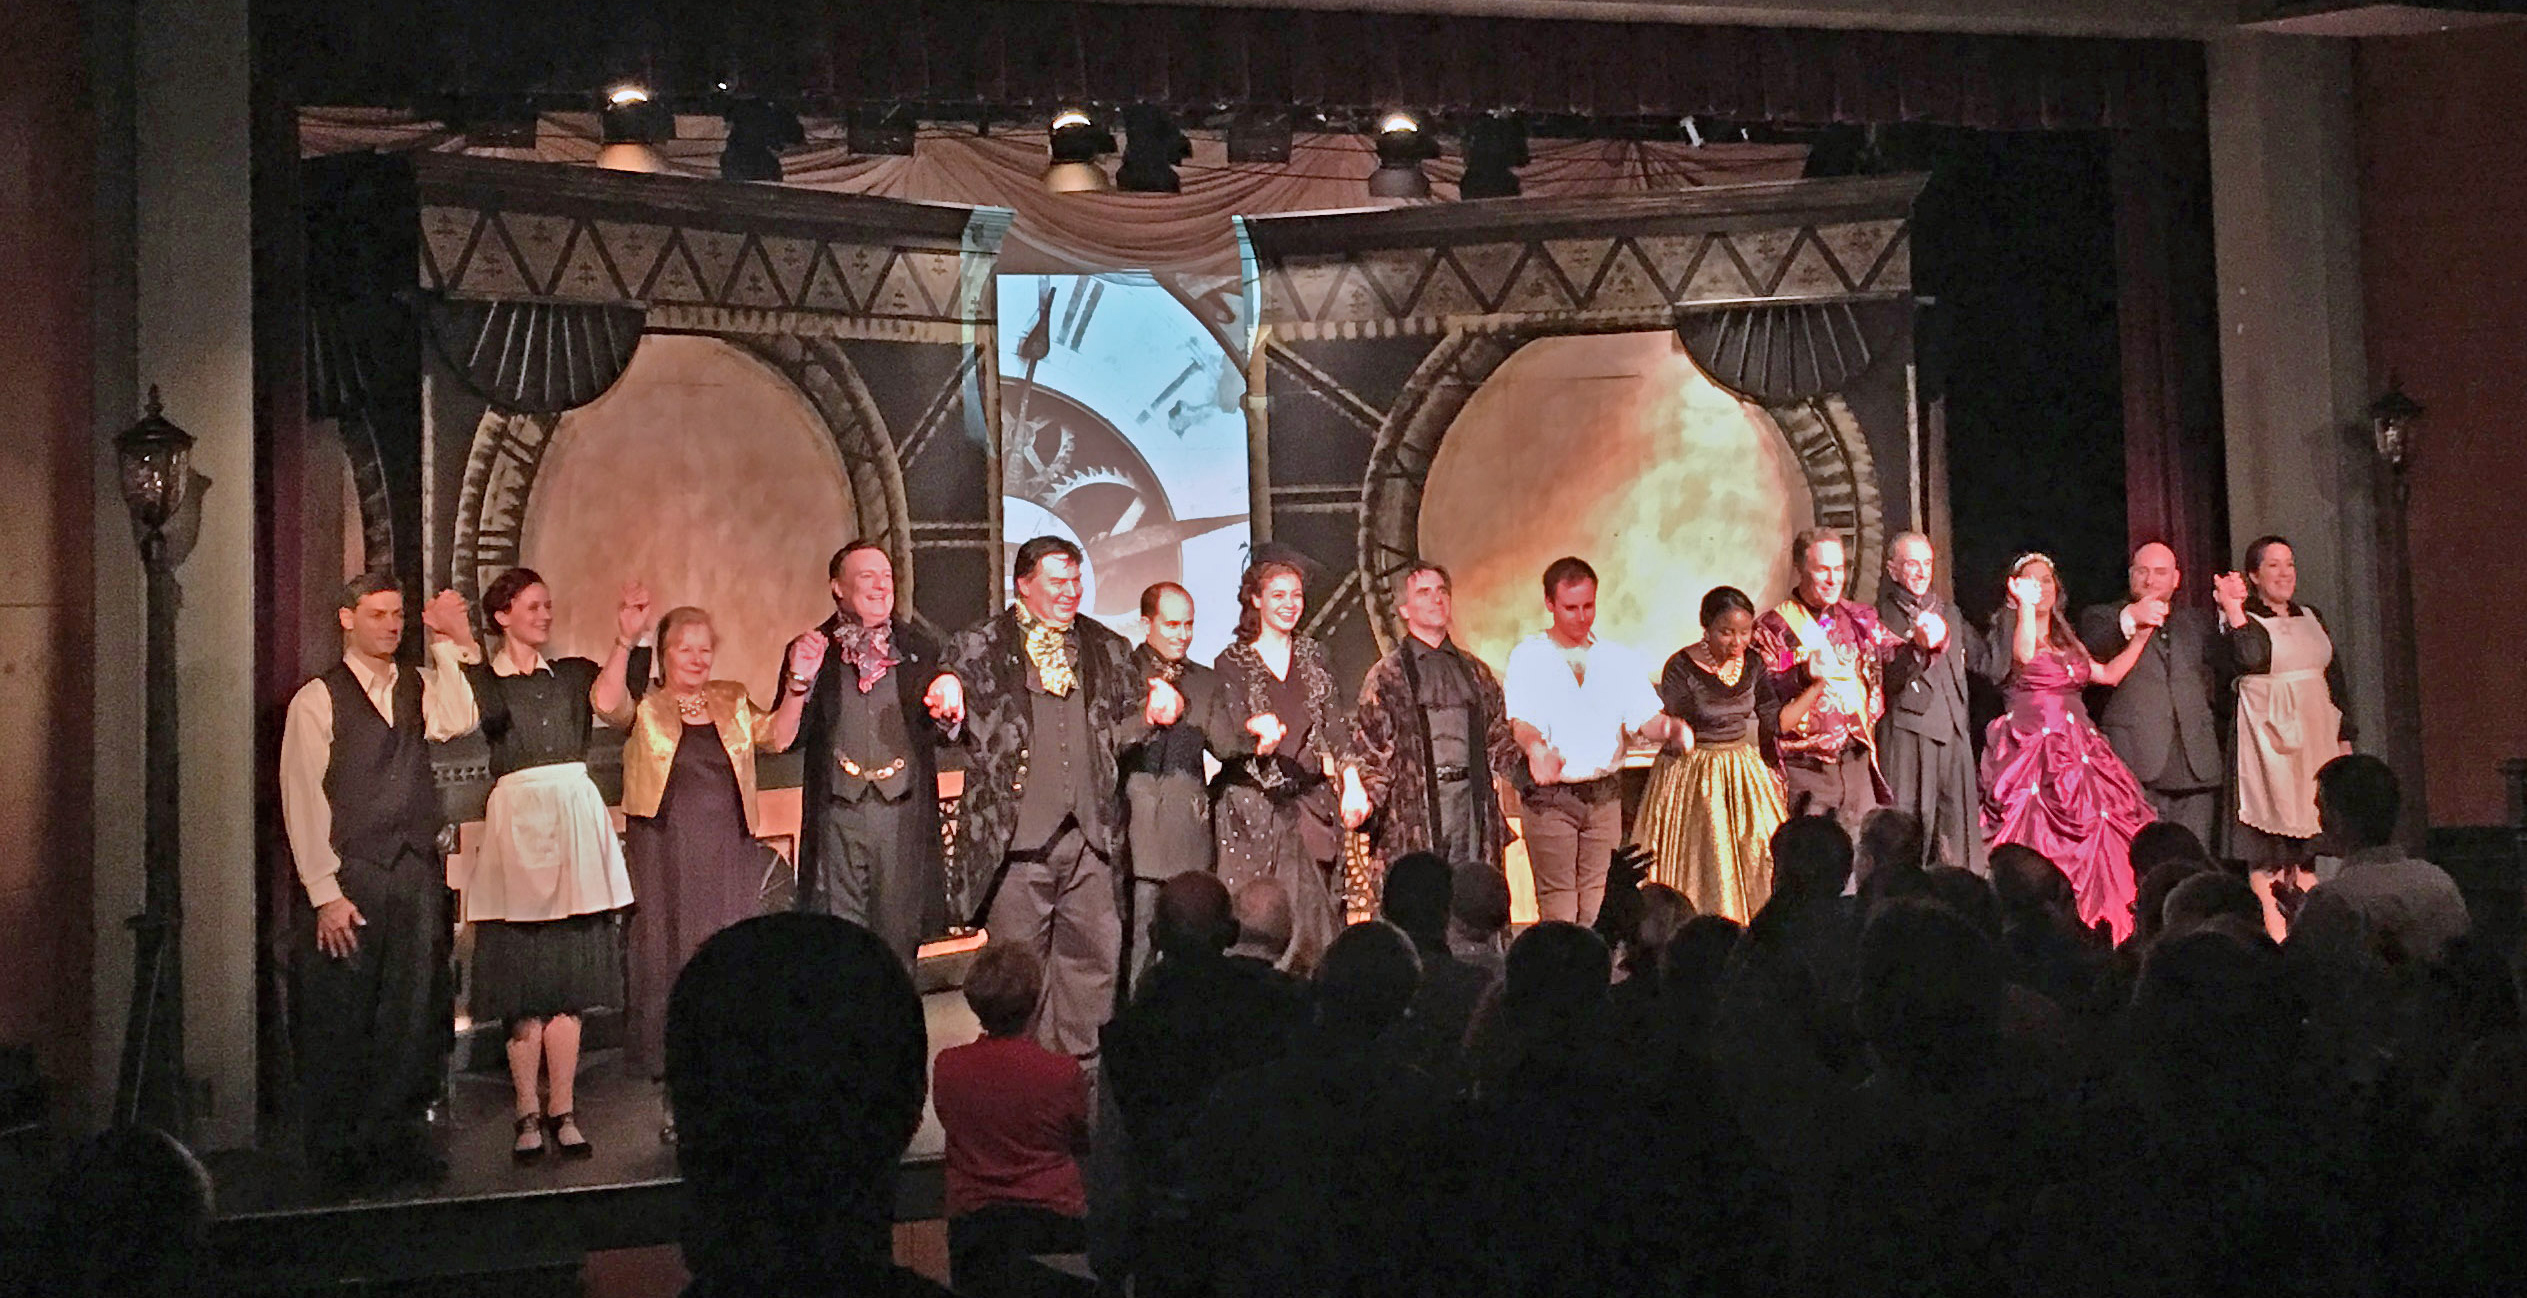 Providence Players Amadeus saturday-10-1-curtain-call-ovation-2-photo-by-chip-gertzog-providence-players